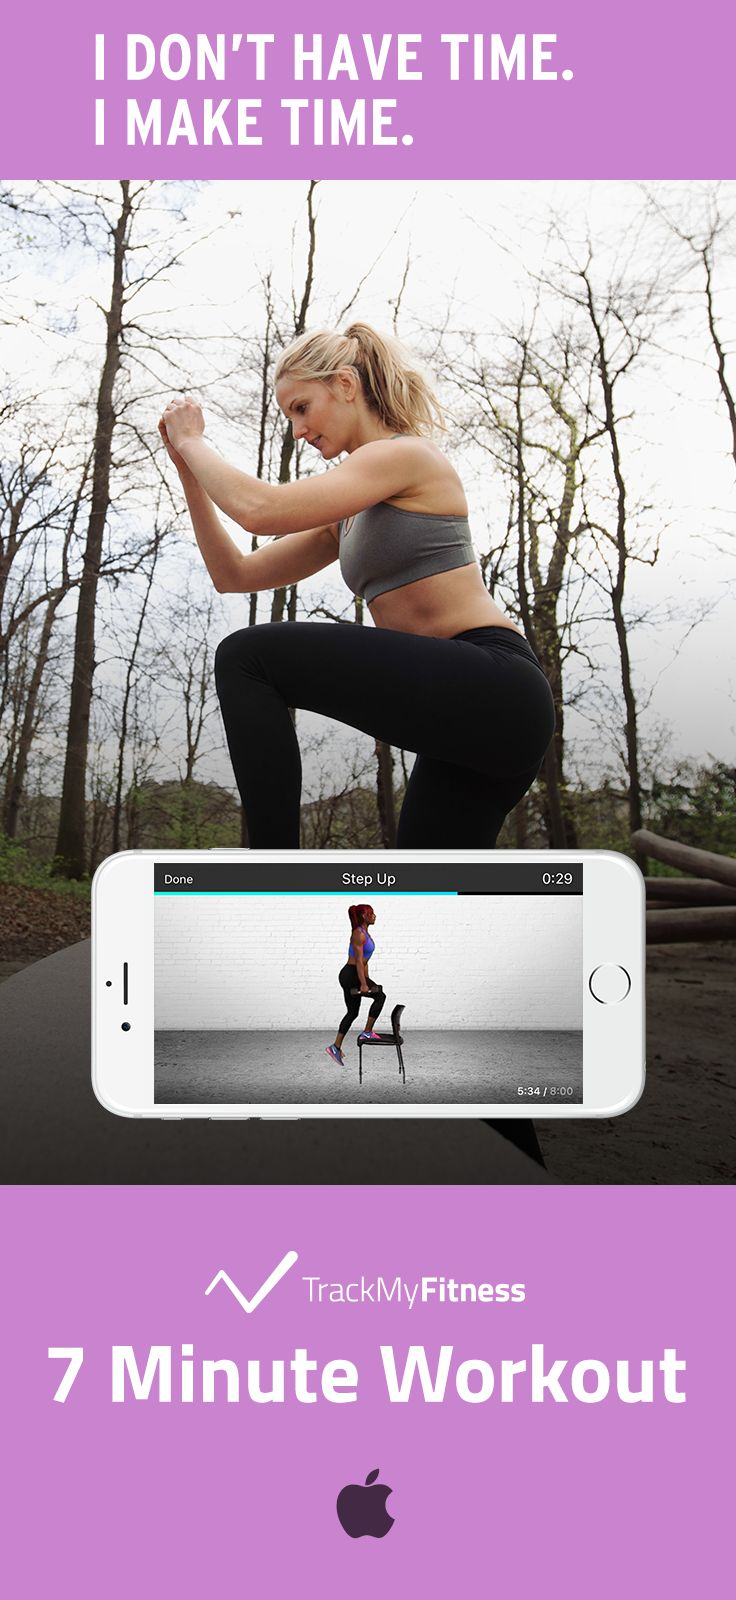 Stop spending your valuable time searching for workouts… Reach your fitness goals faster using 7 Minute Workout's progress and calories burned tracking. Keep it fresh with new exercise routines and wo